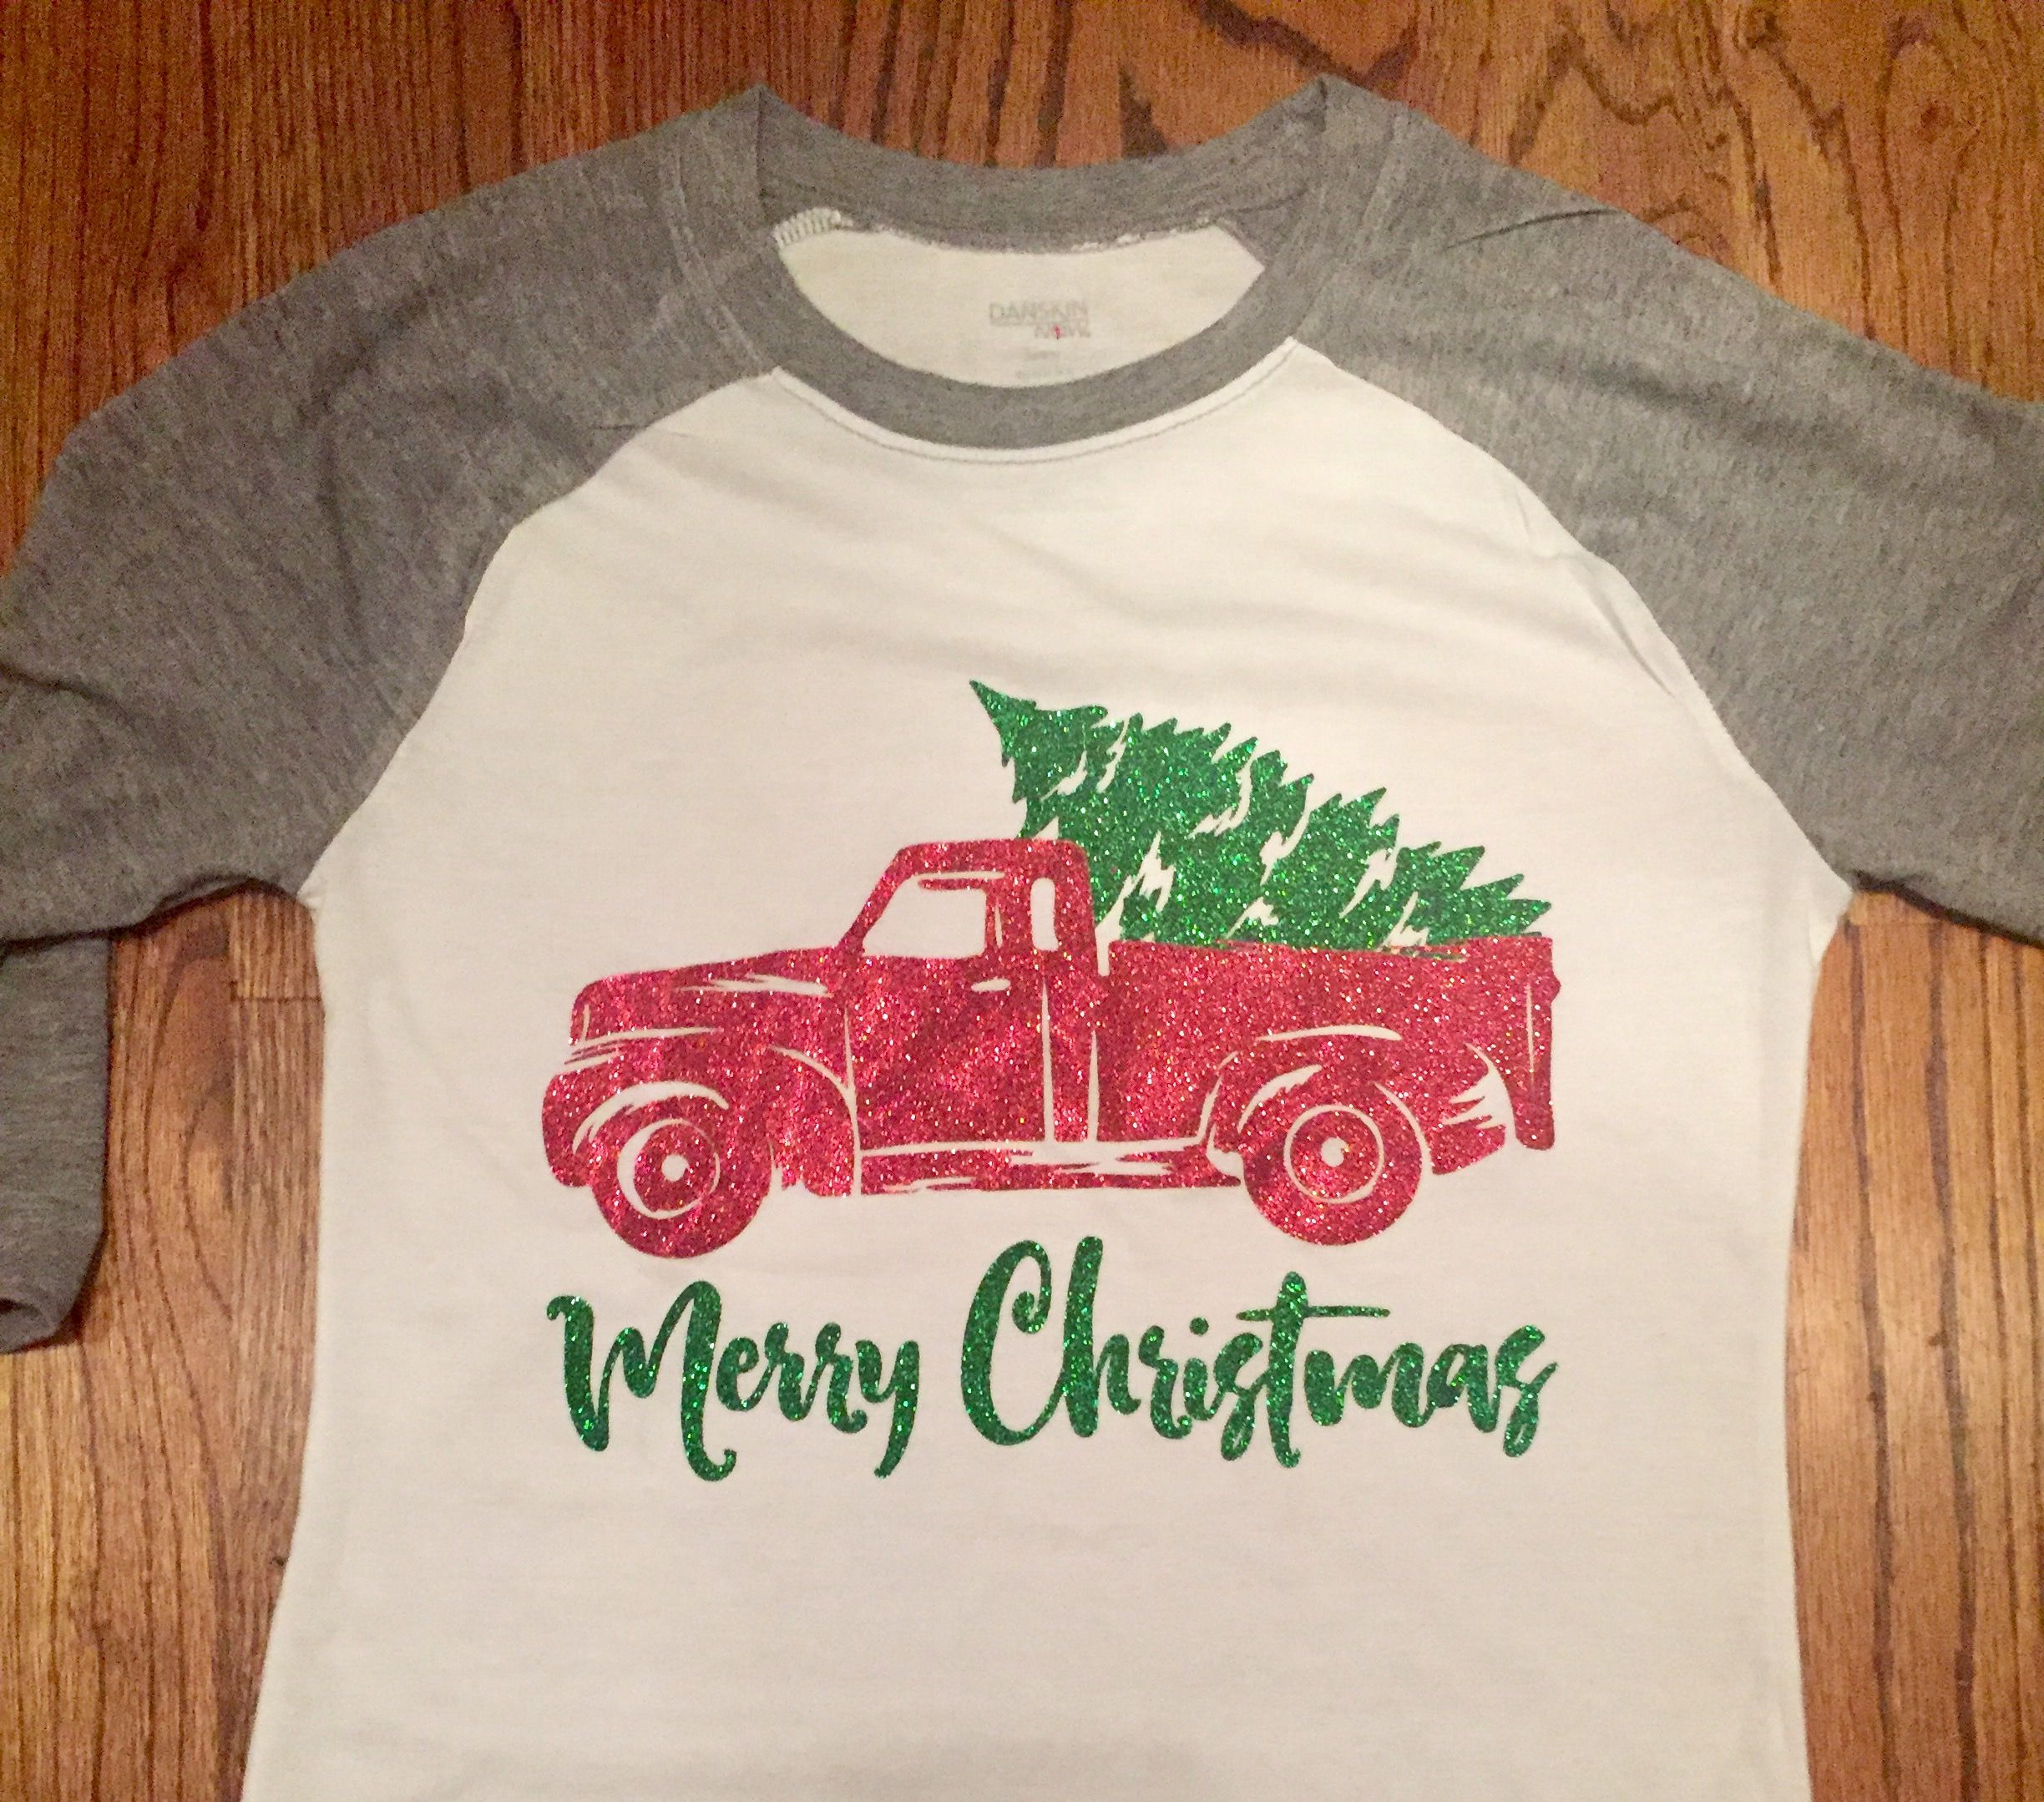 1c4d76b248b5 Gray and white Merry Christmas t-shirt with red and green glitter heat  transfer vinyl (htv). Red truck with Christmas tree. Siser Easyweed.